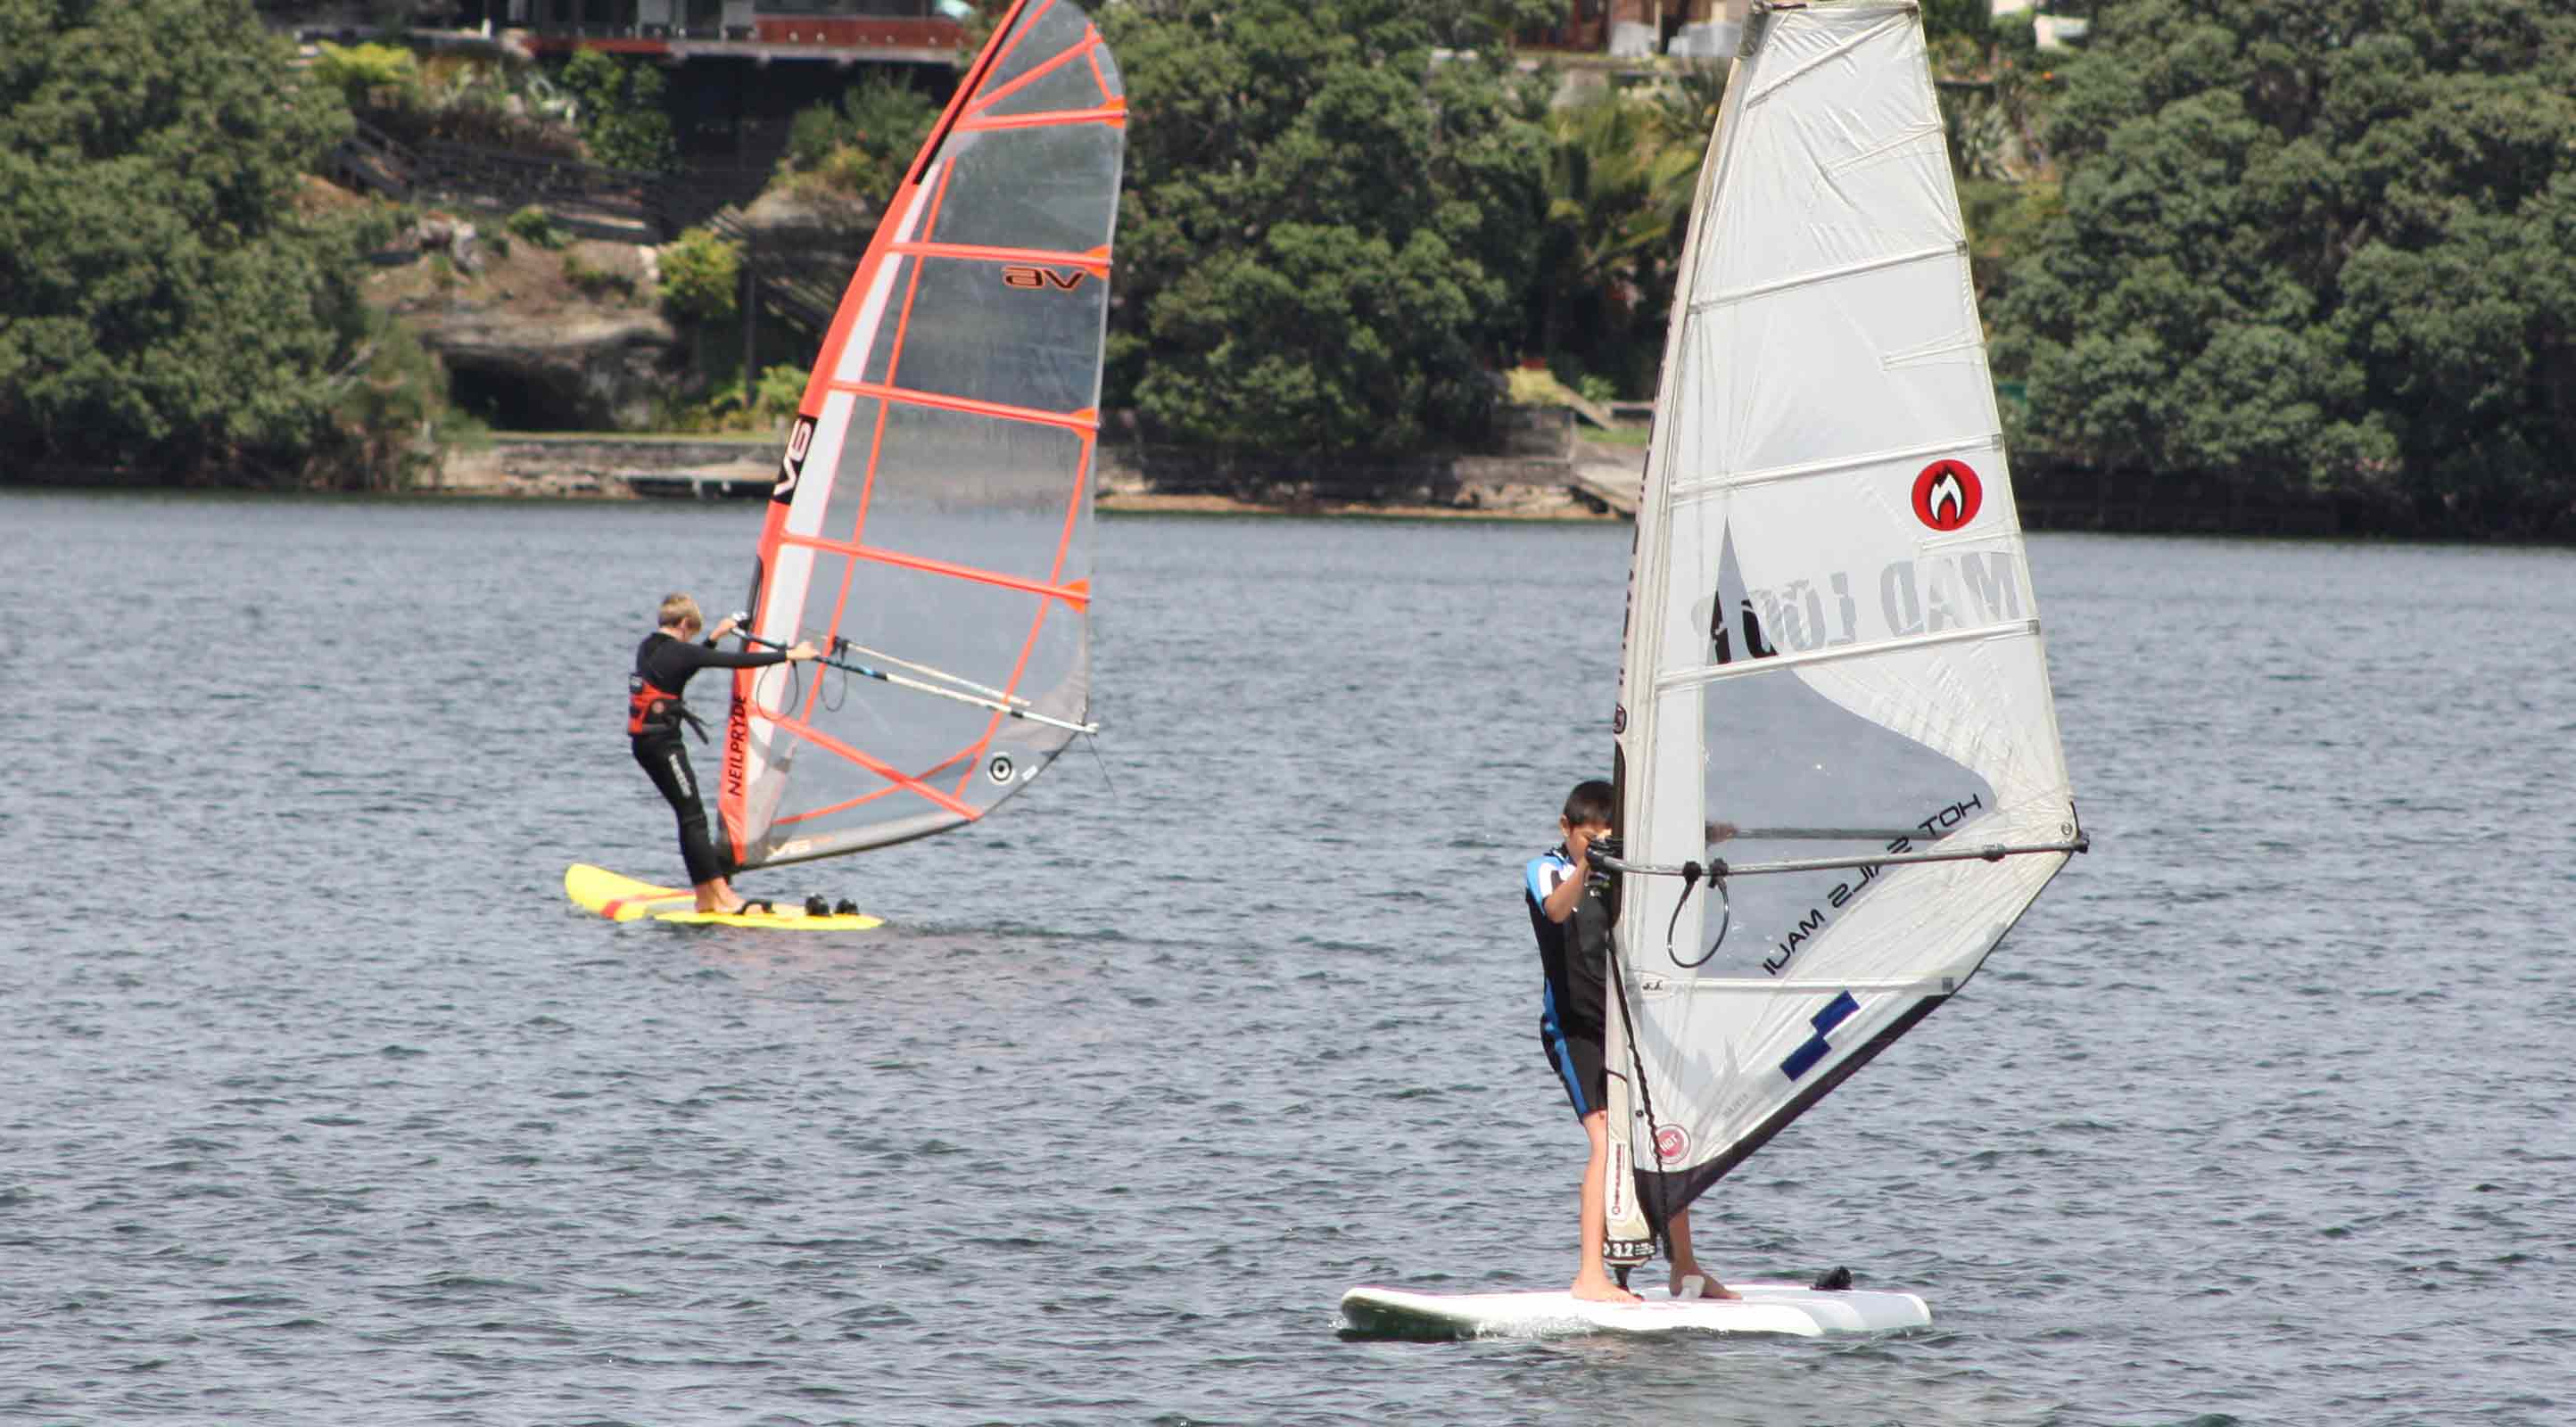 Saint-Kentigern-Boys'-School-Sports-Wind-surfing.jpg